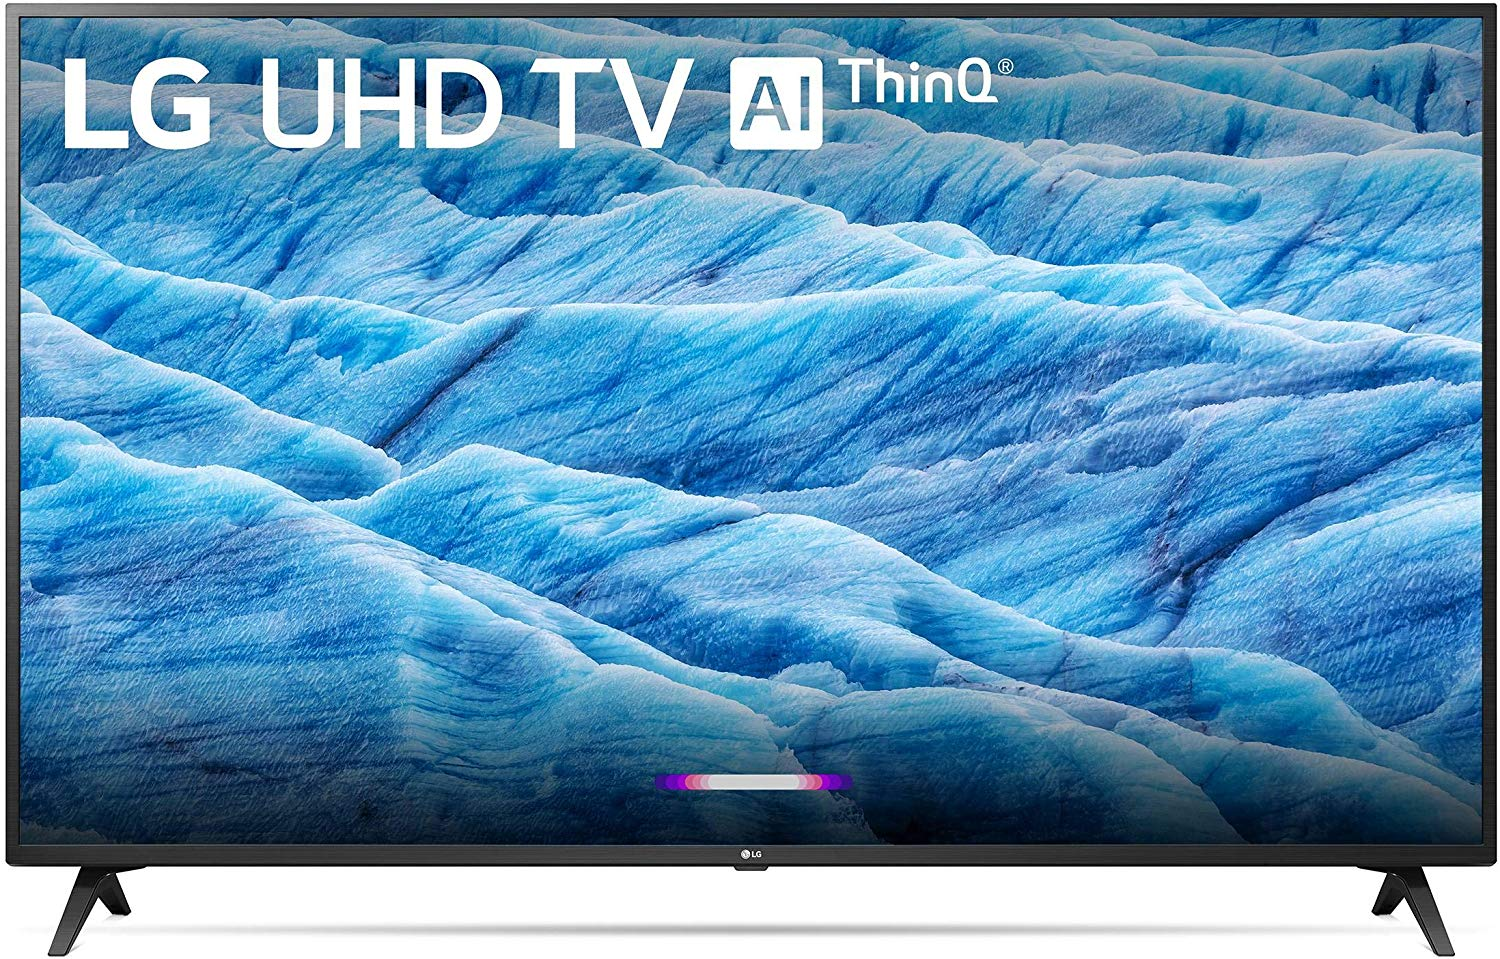 "55"" LG UM7300PUA 4K UltraHD 2019 Smart TV Price is at Its Lowest, It Can Be Purchase Now for $400"